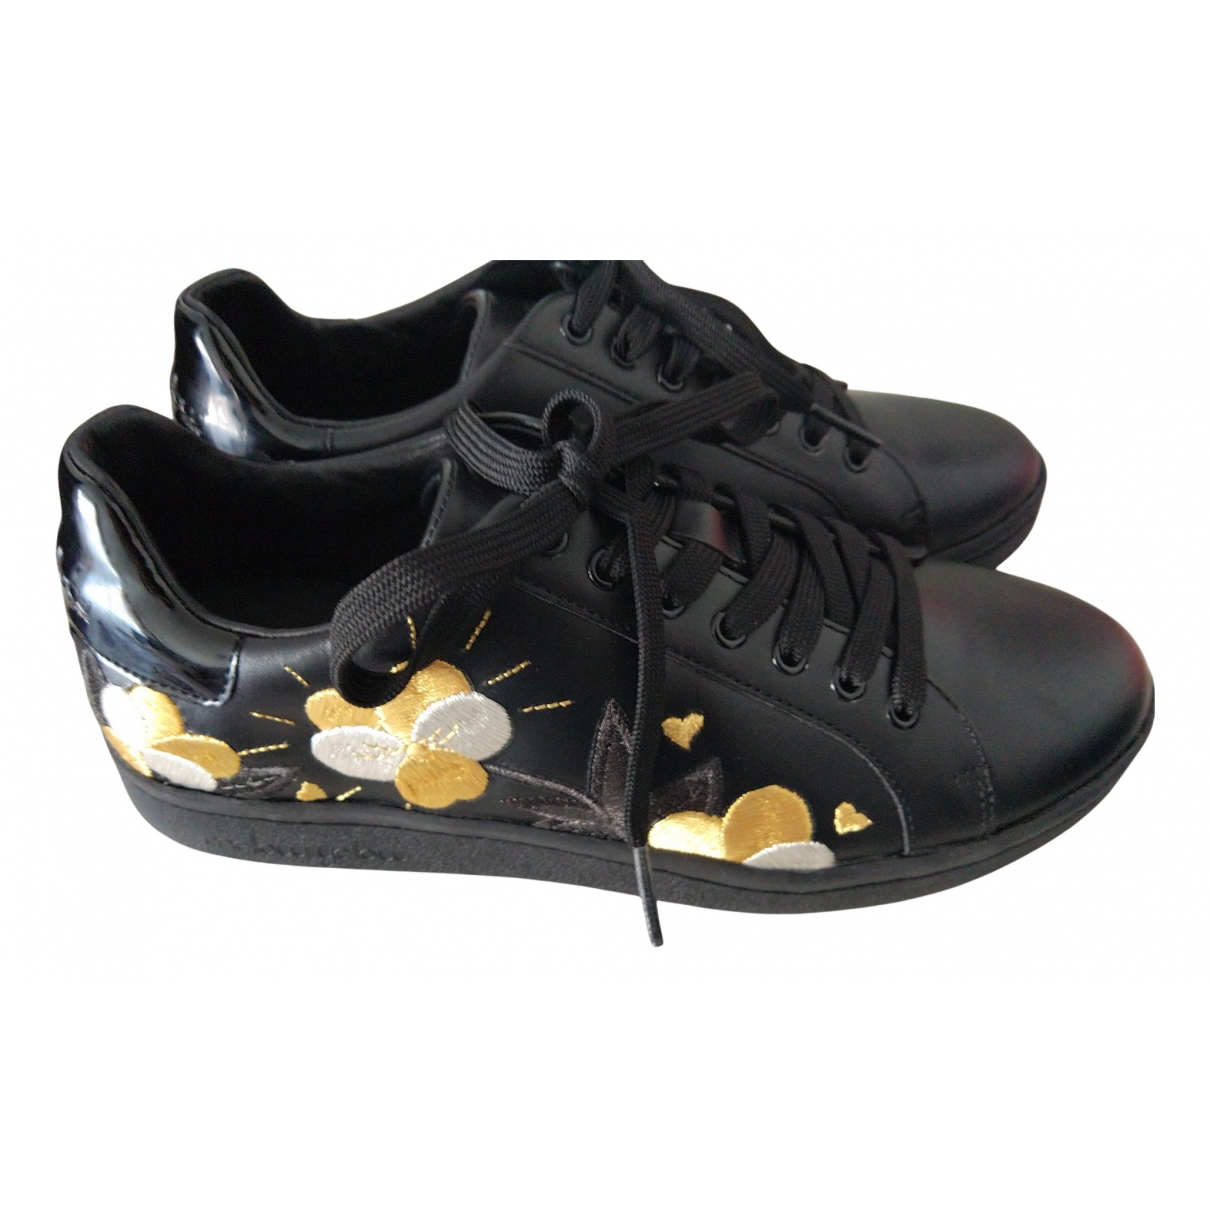 Mellow Yellow N Black Leather Trainers for Women 36 EU